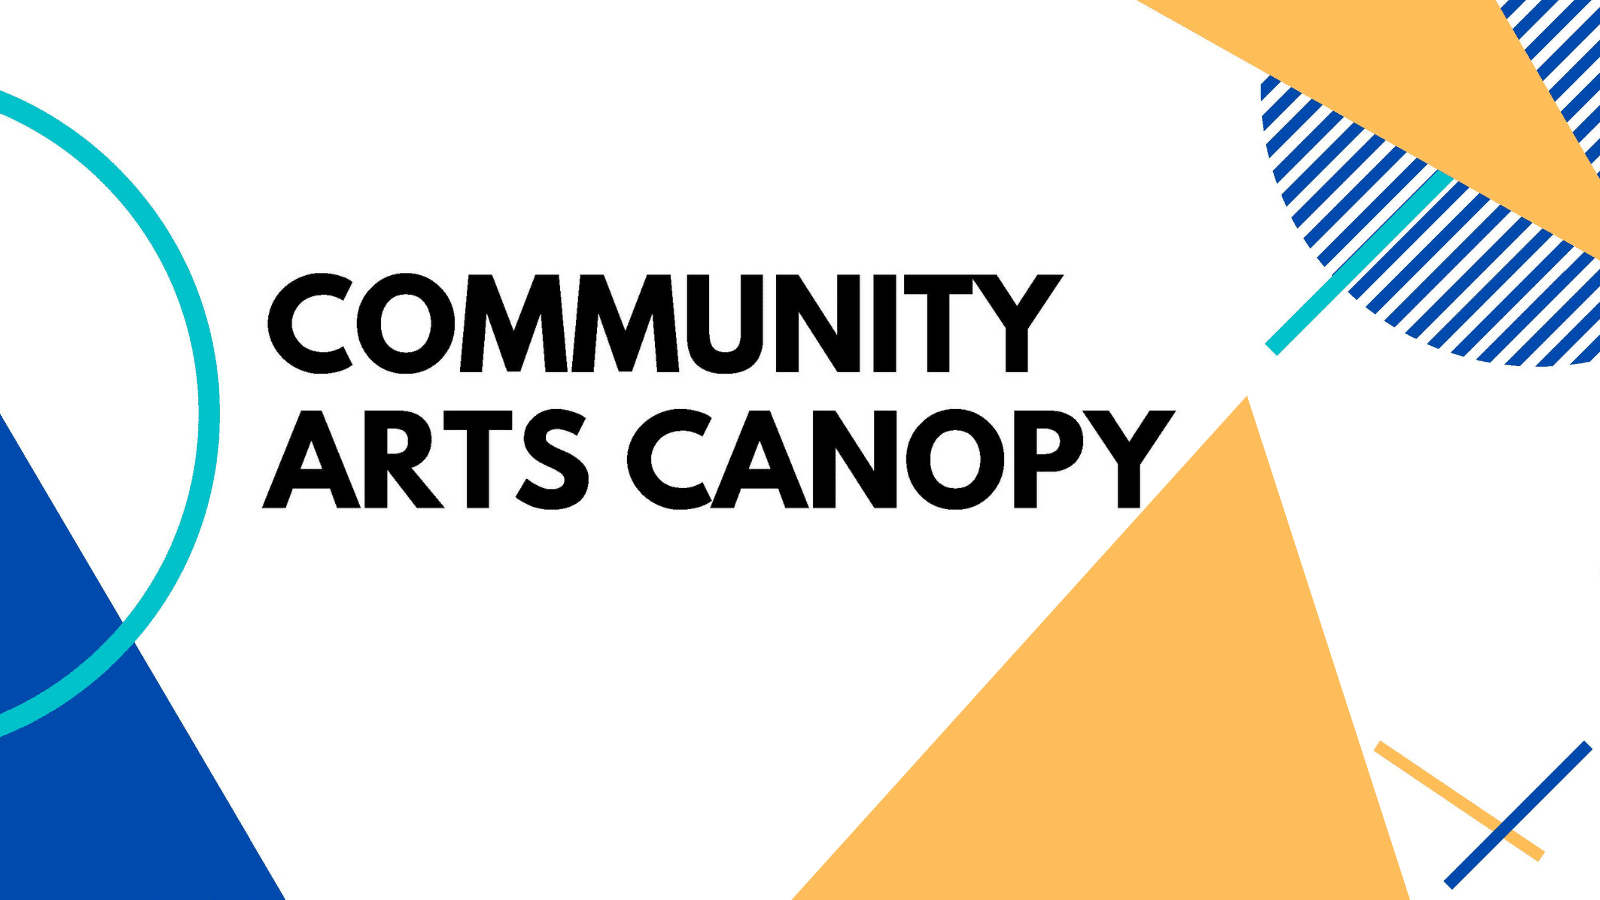 Community Arts Canopy: Rebuilding Toronto's Arts & Culture Sector